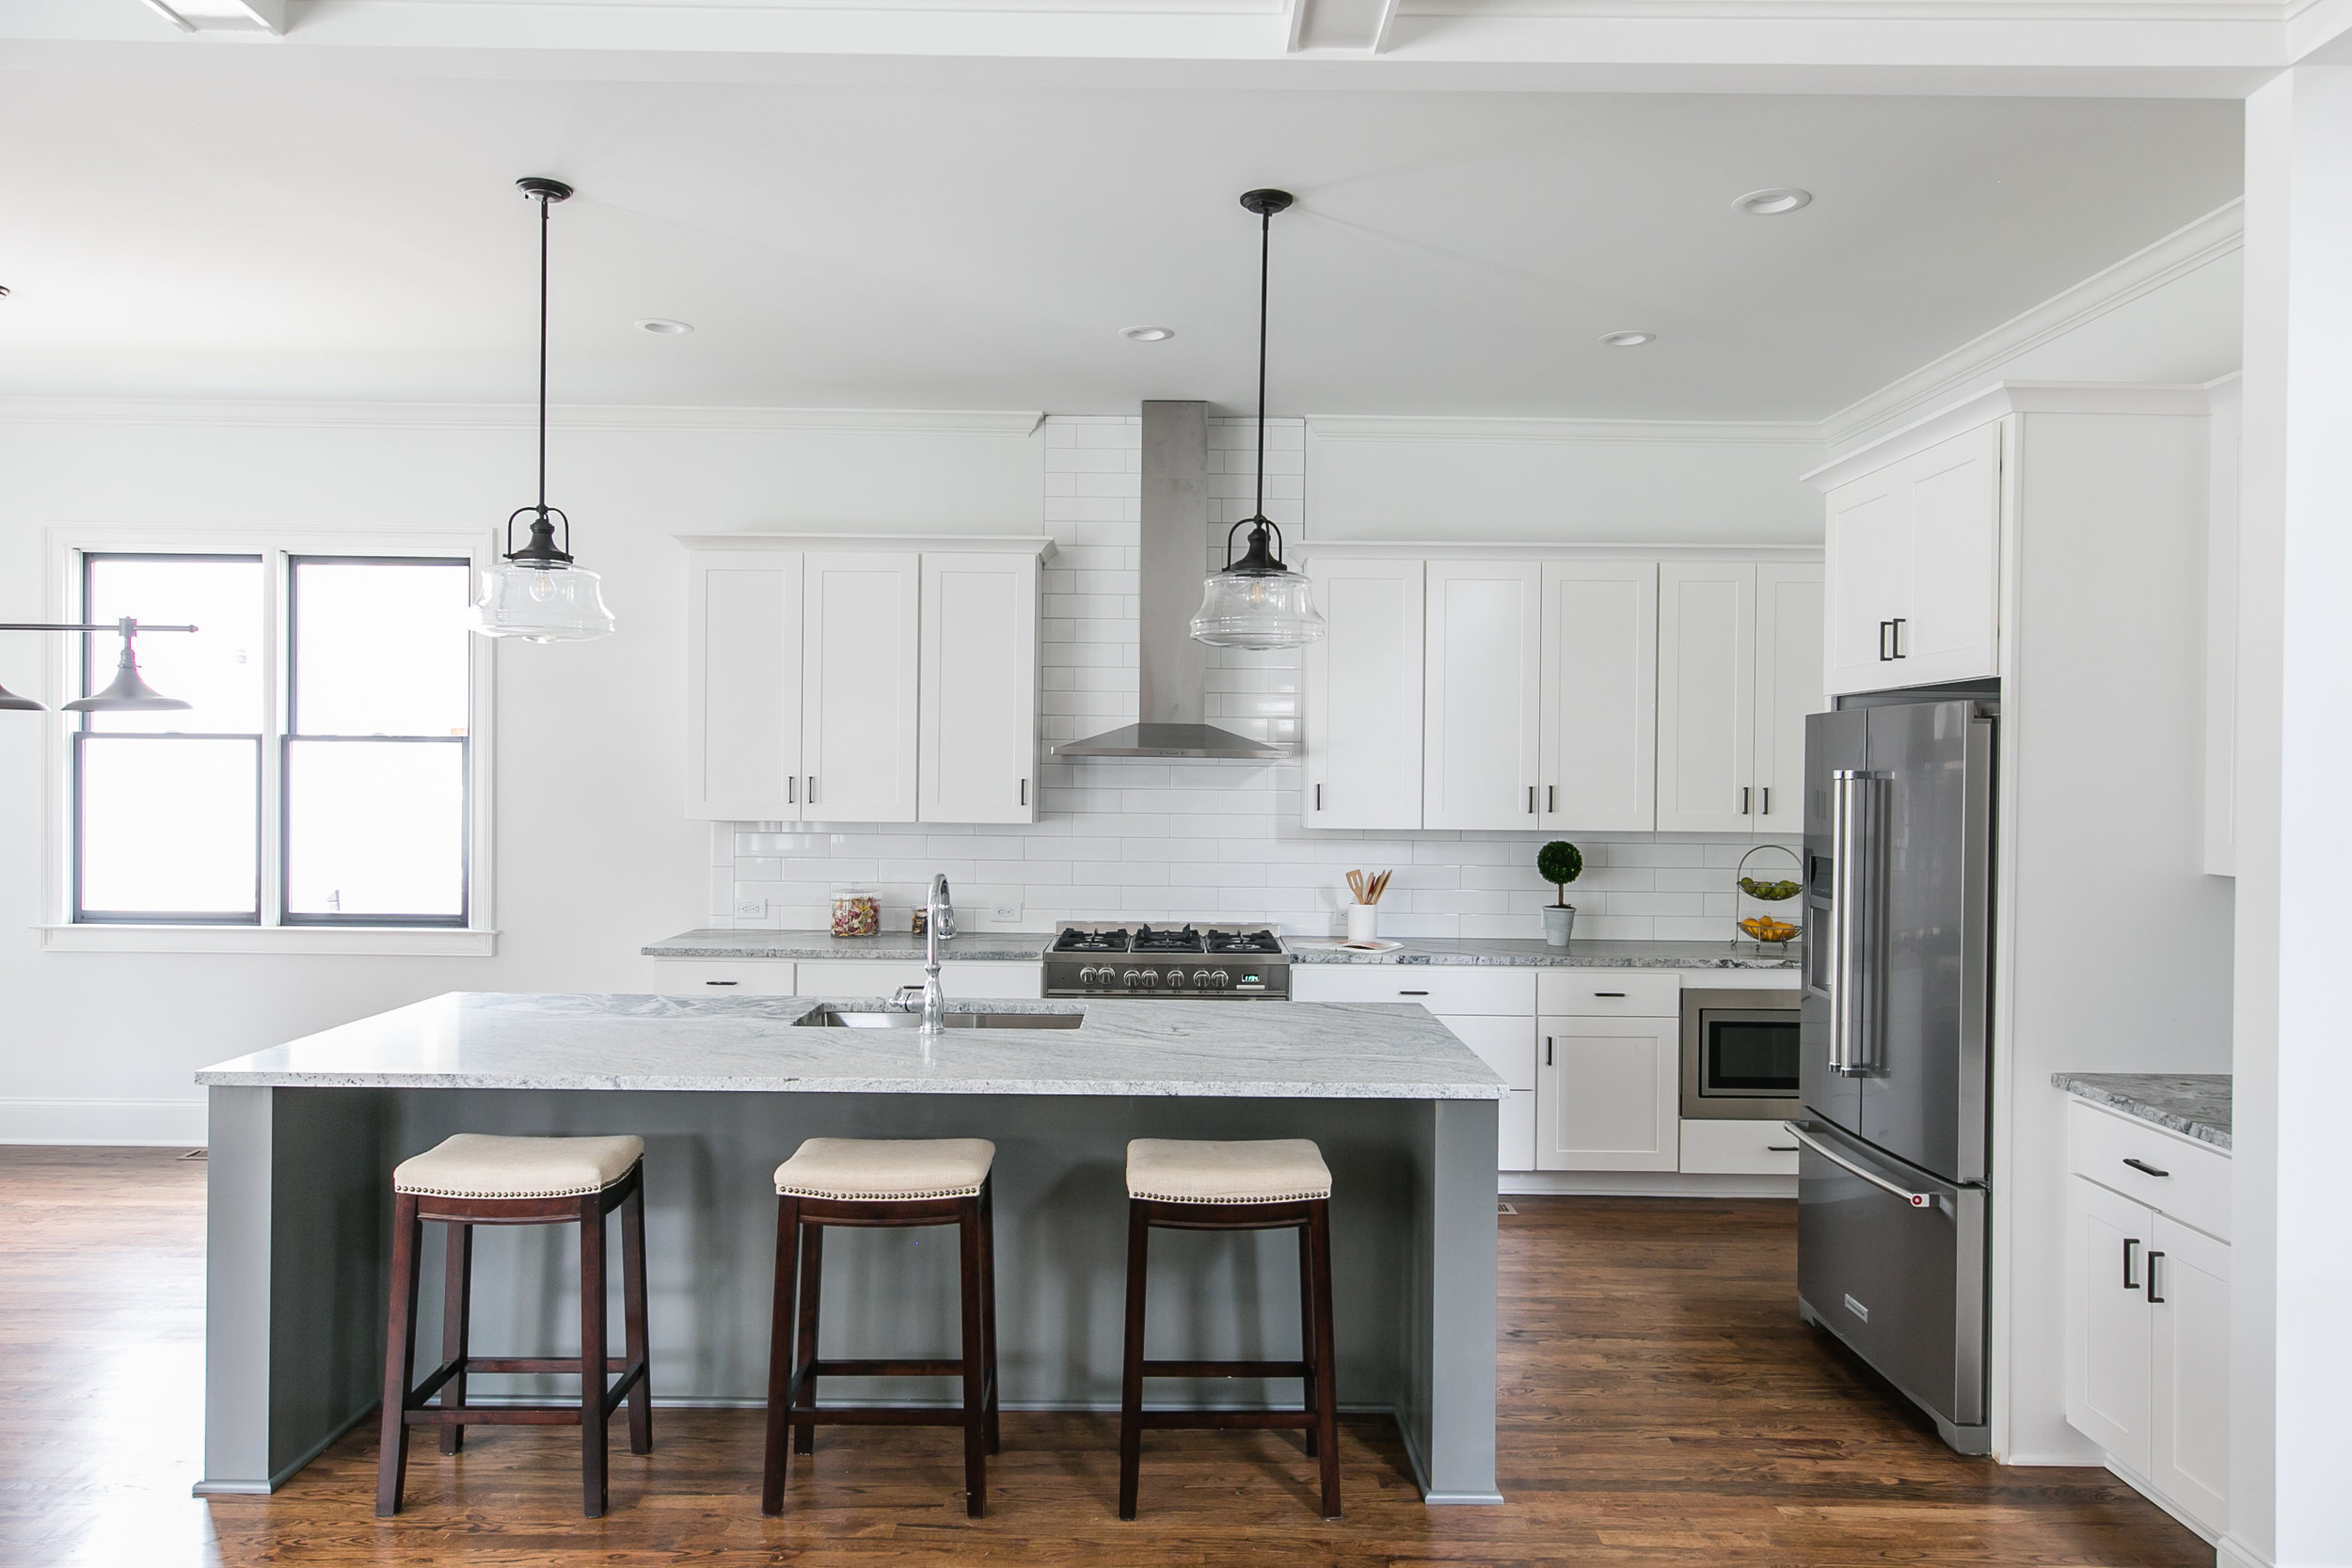 218 Kirkwood-Kitchen 2.jpg